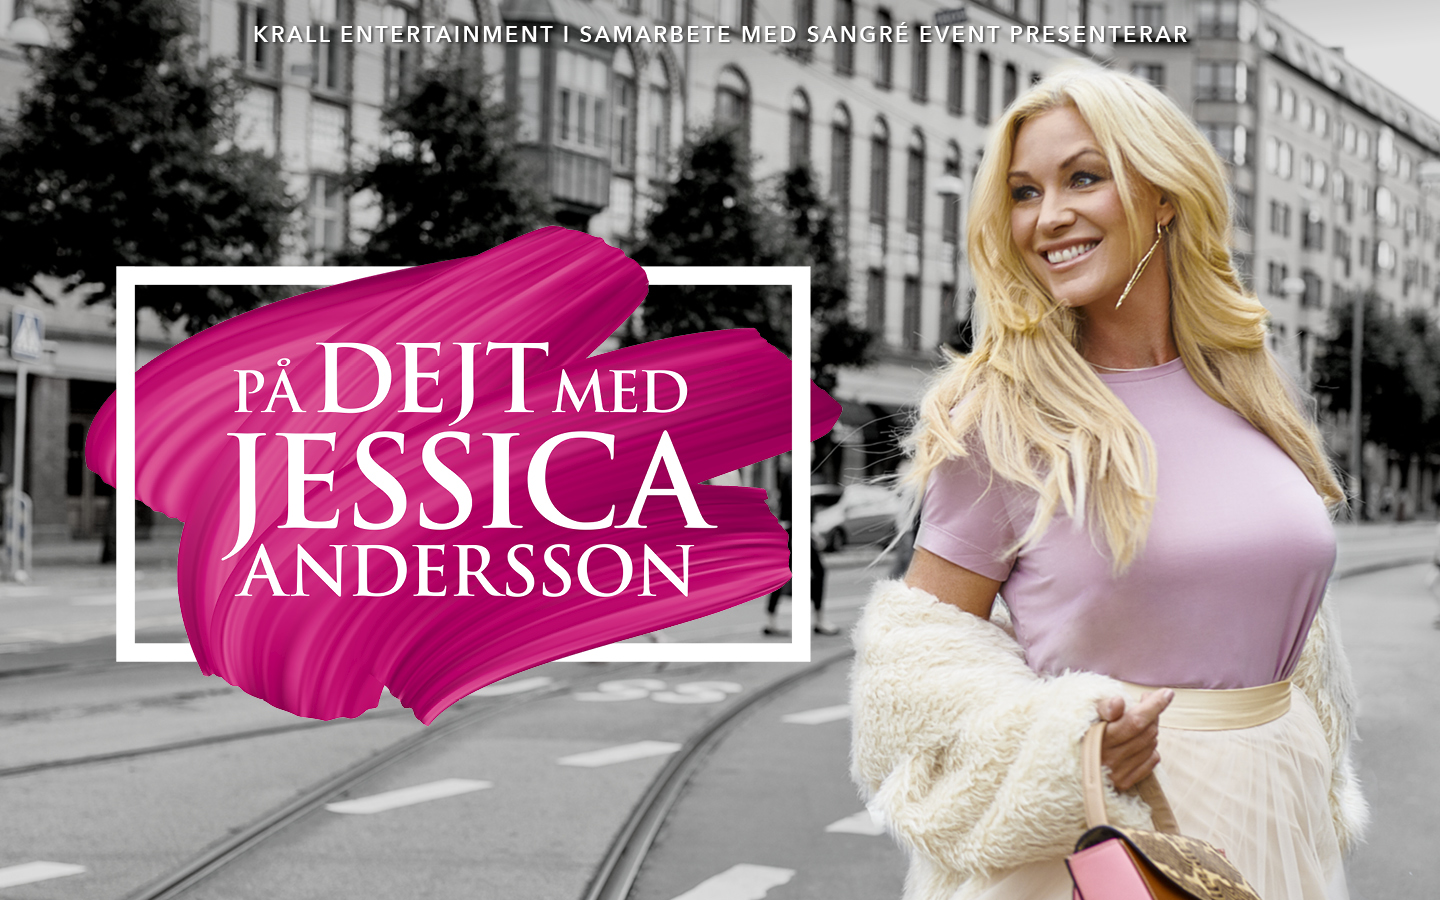 Jessica andersson 40144